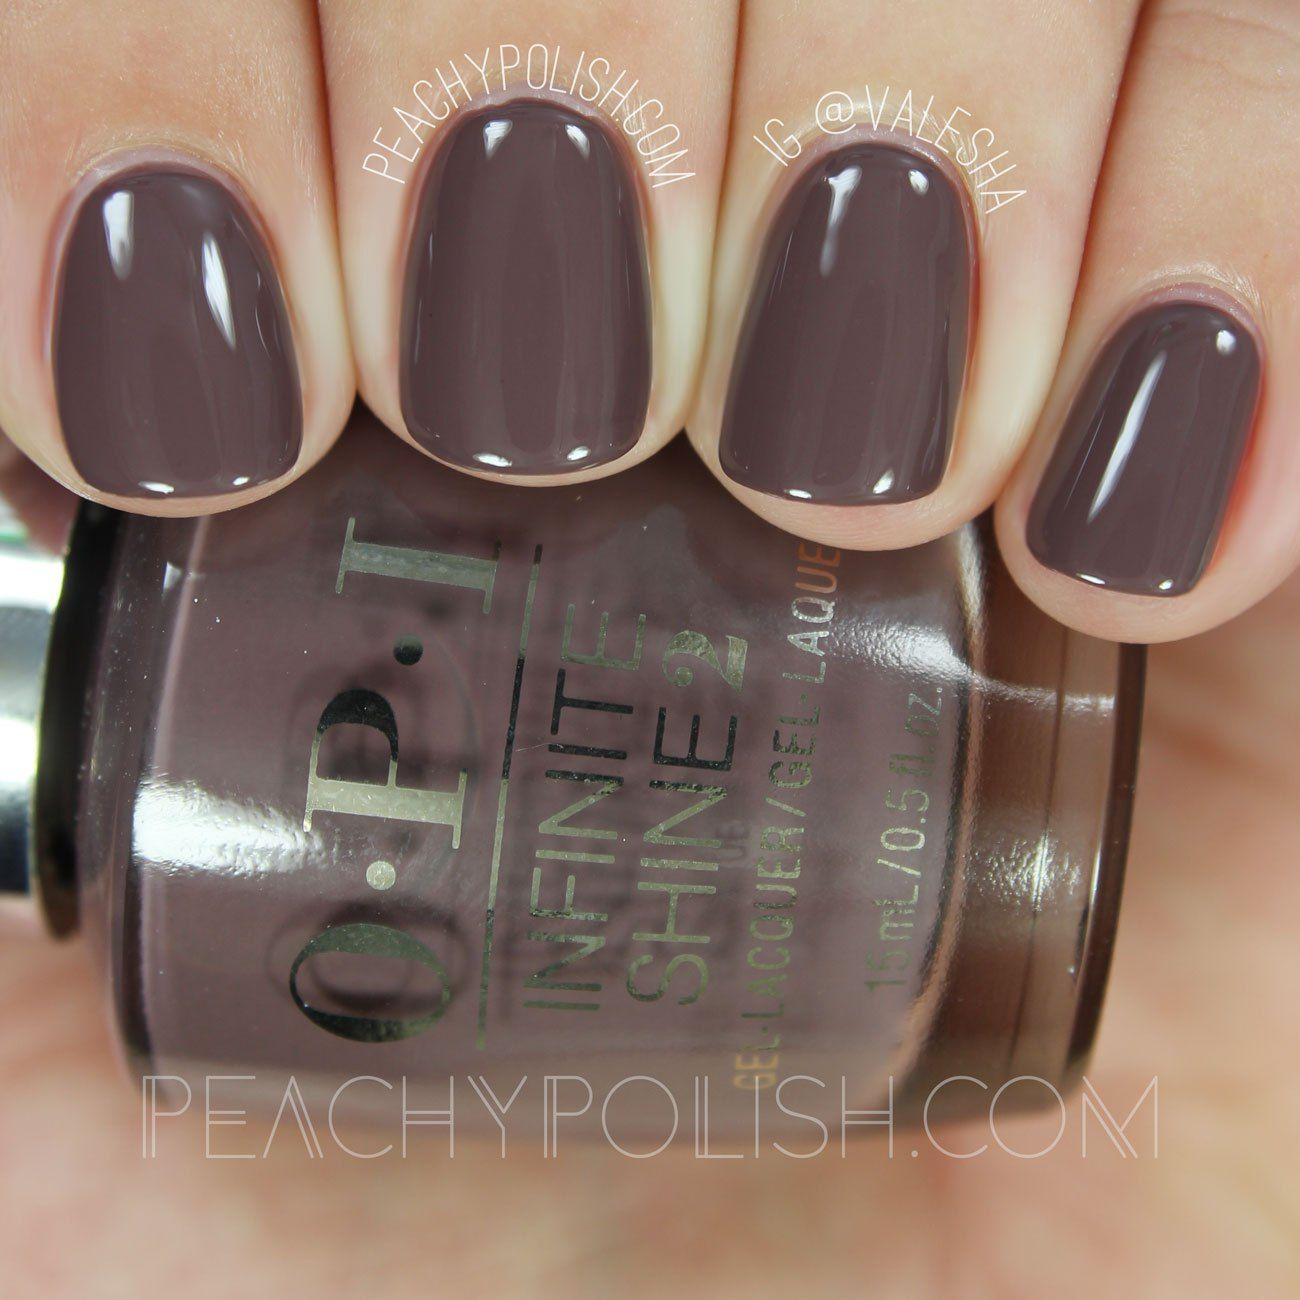 Opi Infinite Shine Iconic Collection Swatches Review Nail Polish Nails Cute Nails